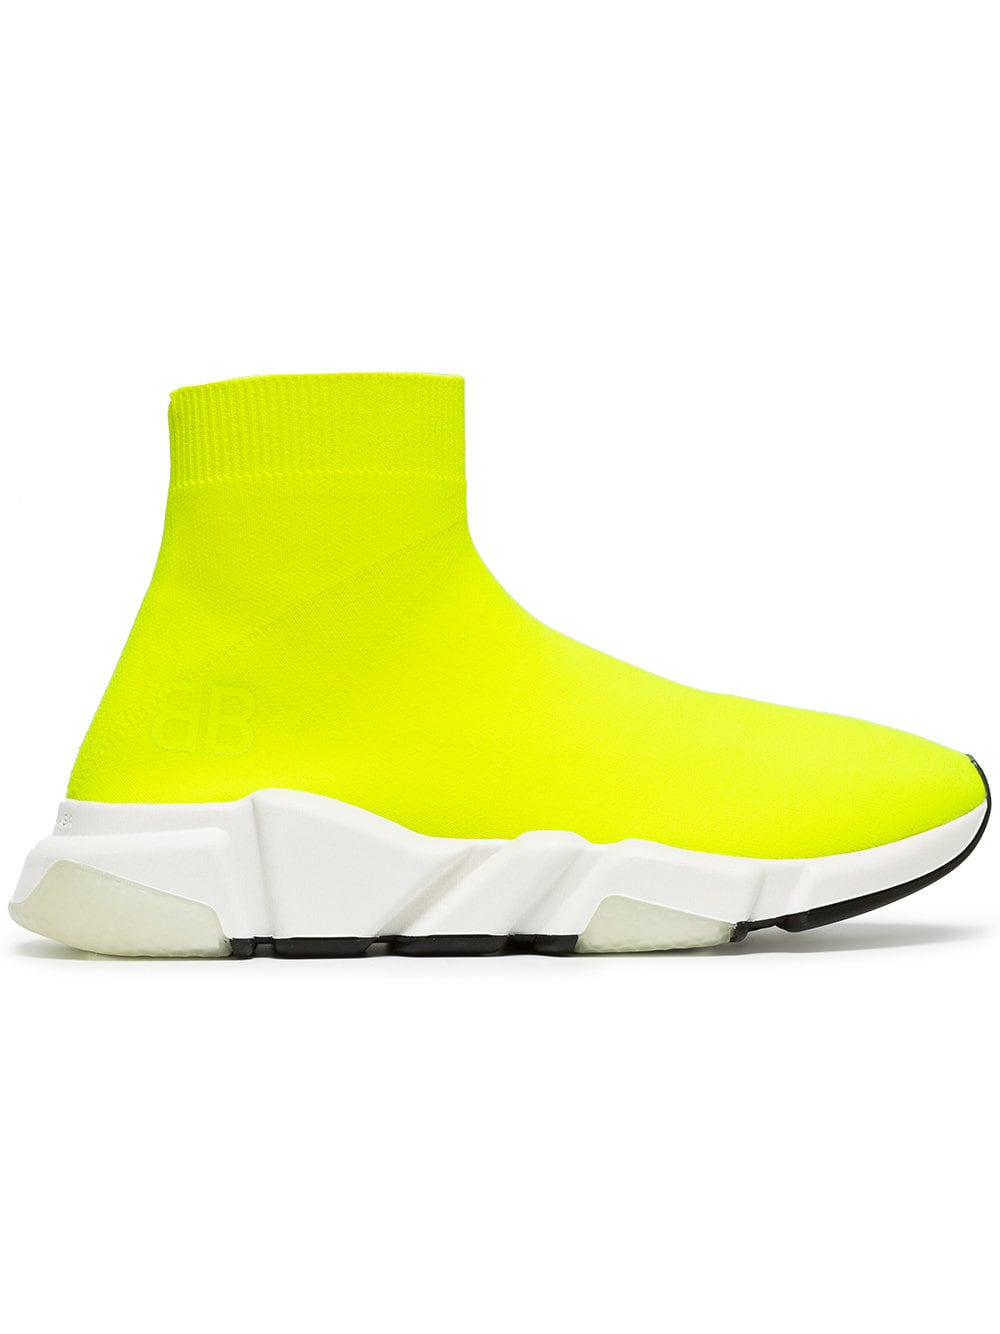 Neon Yellow Speed Sneakers- £525 Balenciaga